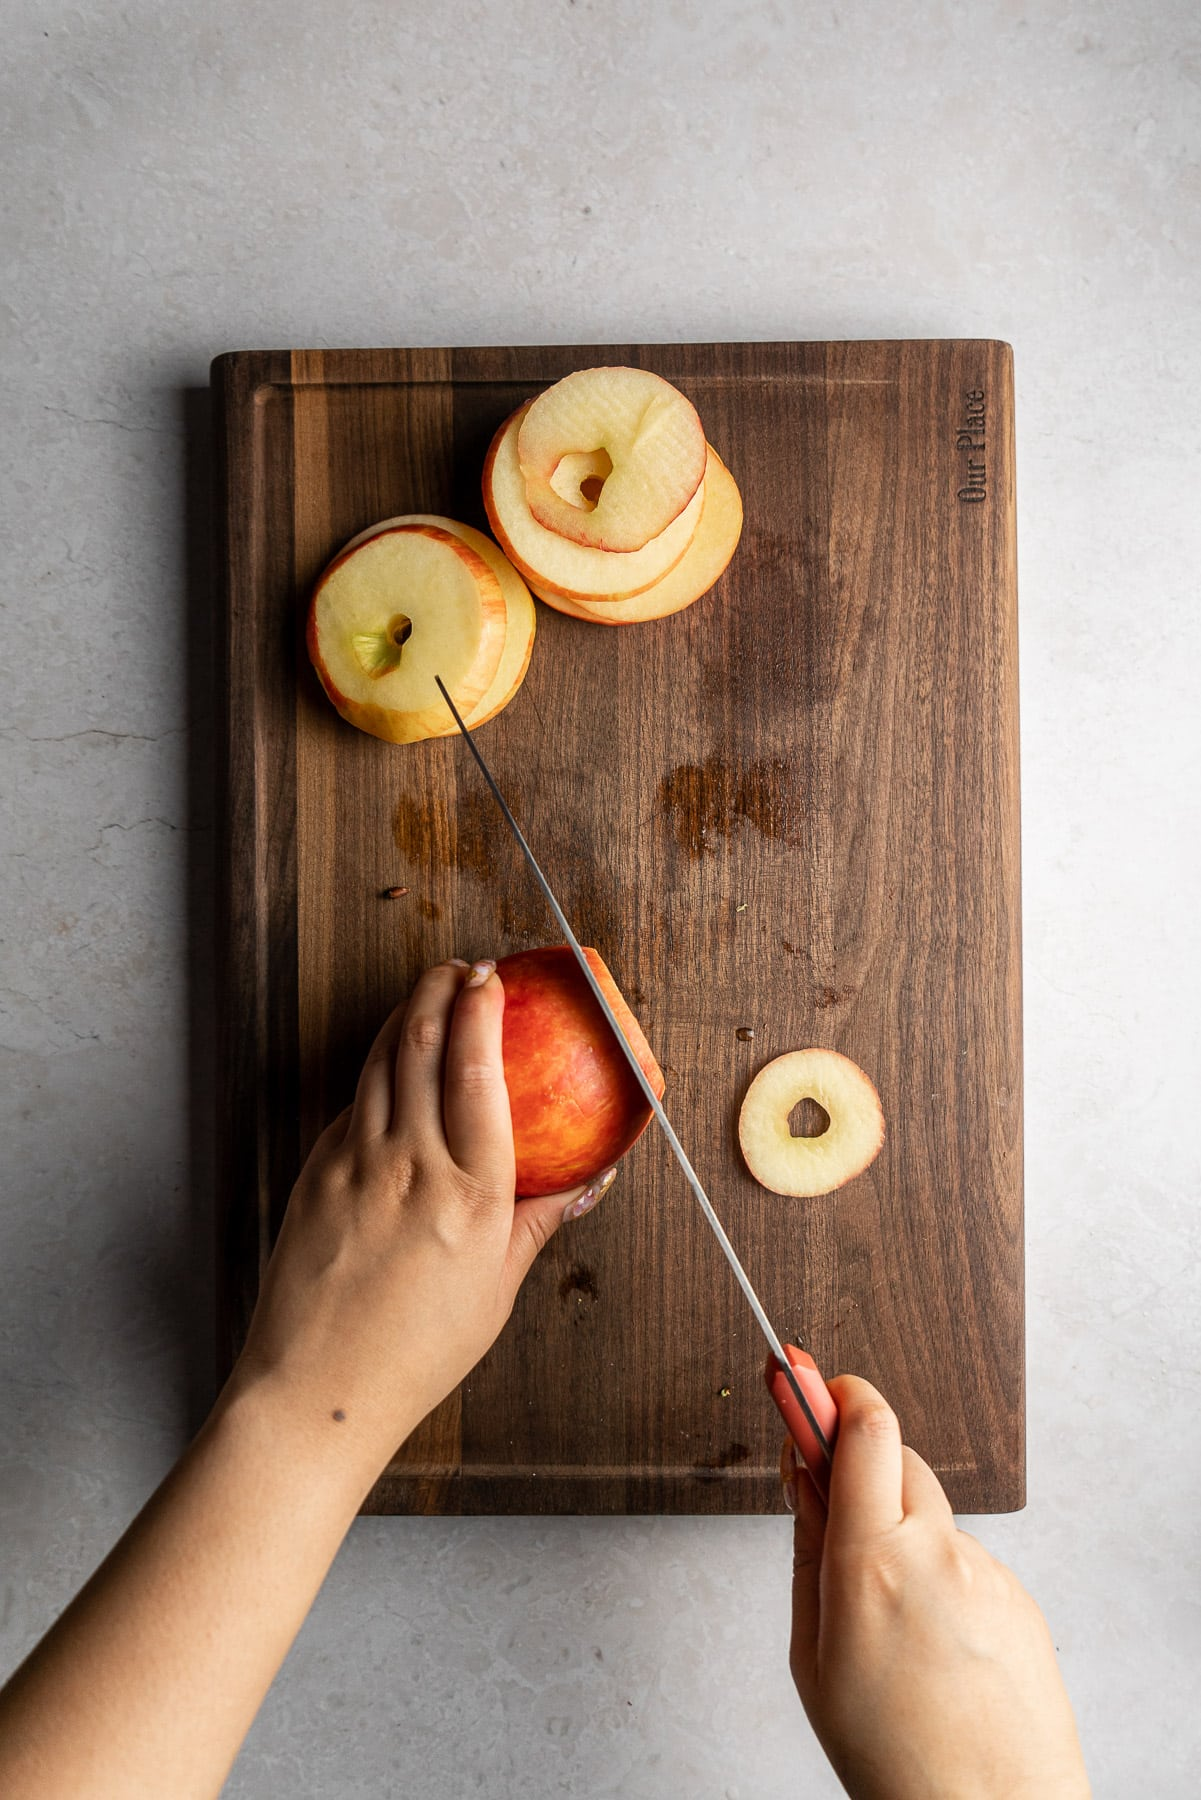 cutting honeycrisp apples into rings with a knife on a cutting board